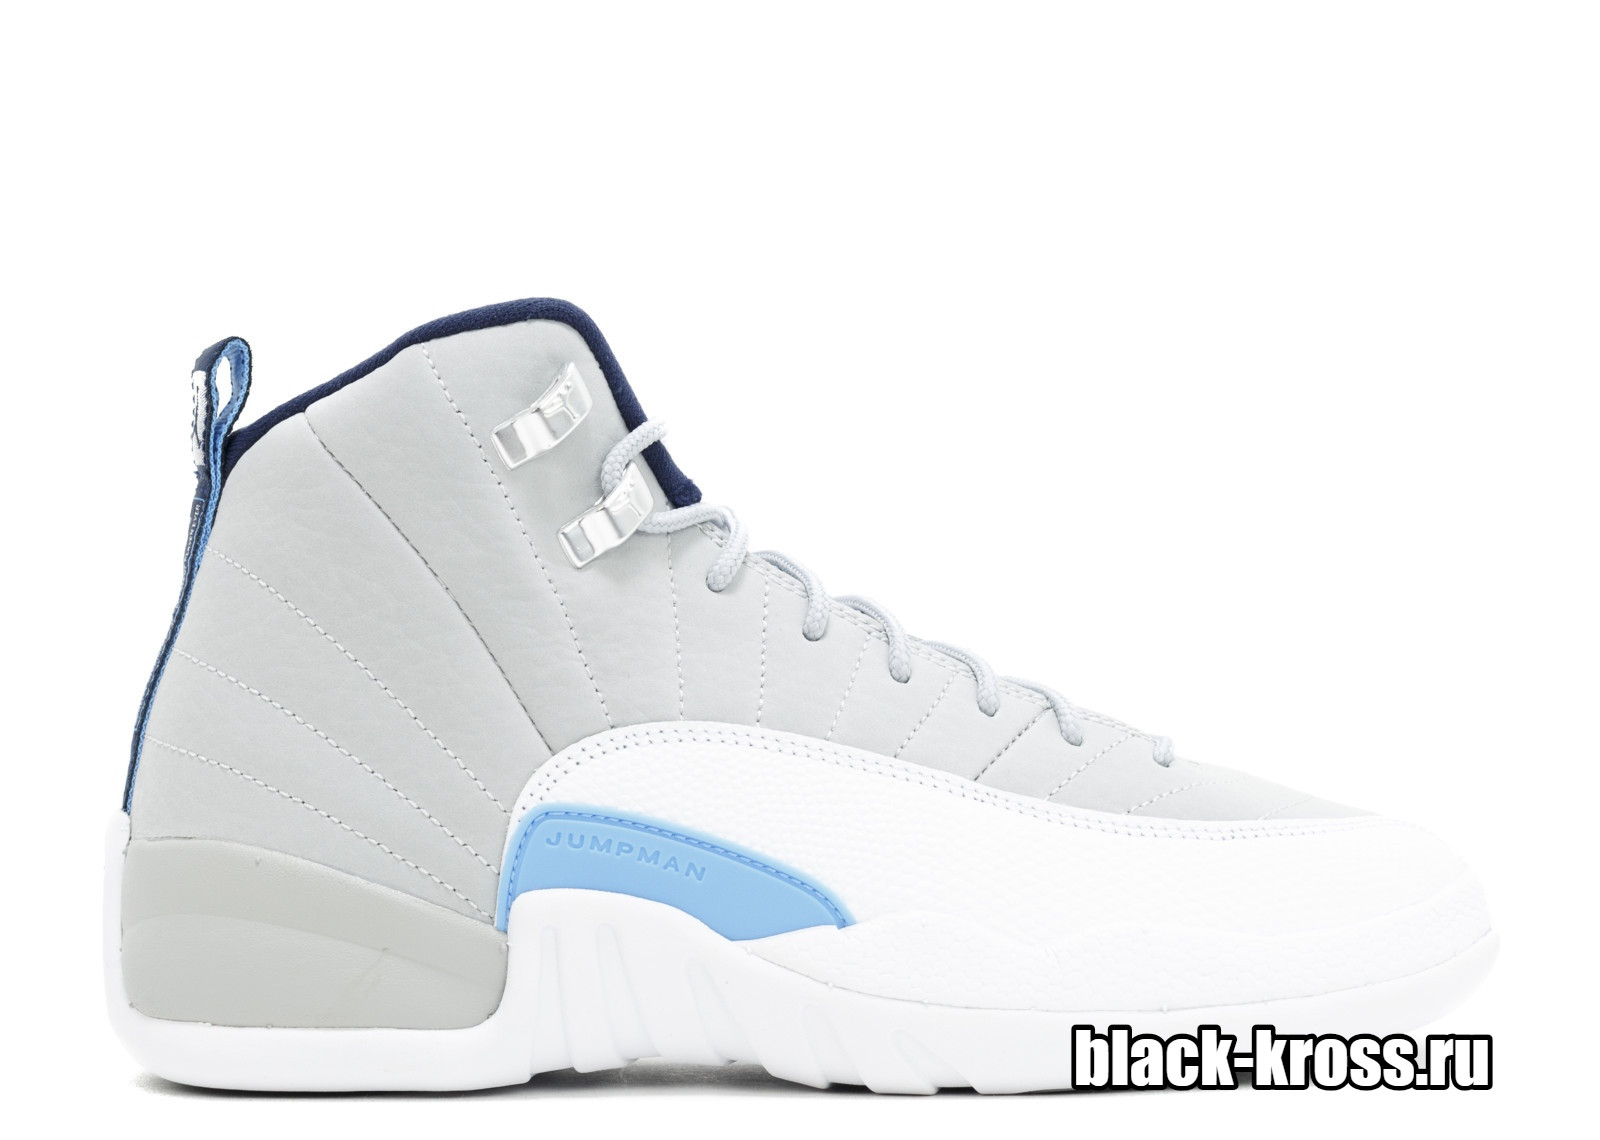 NIKE AIR JORDAN 12 RETRO Grey & Blue (41-46)